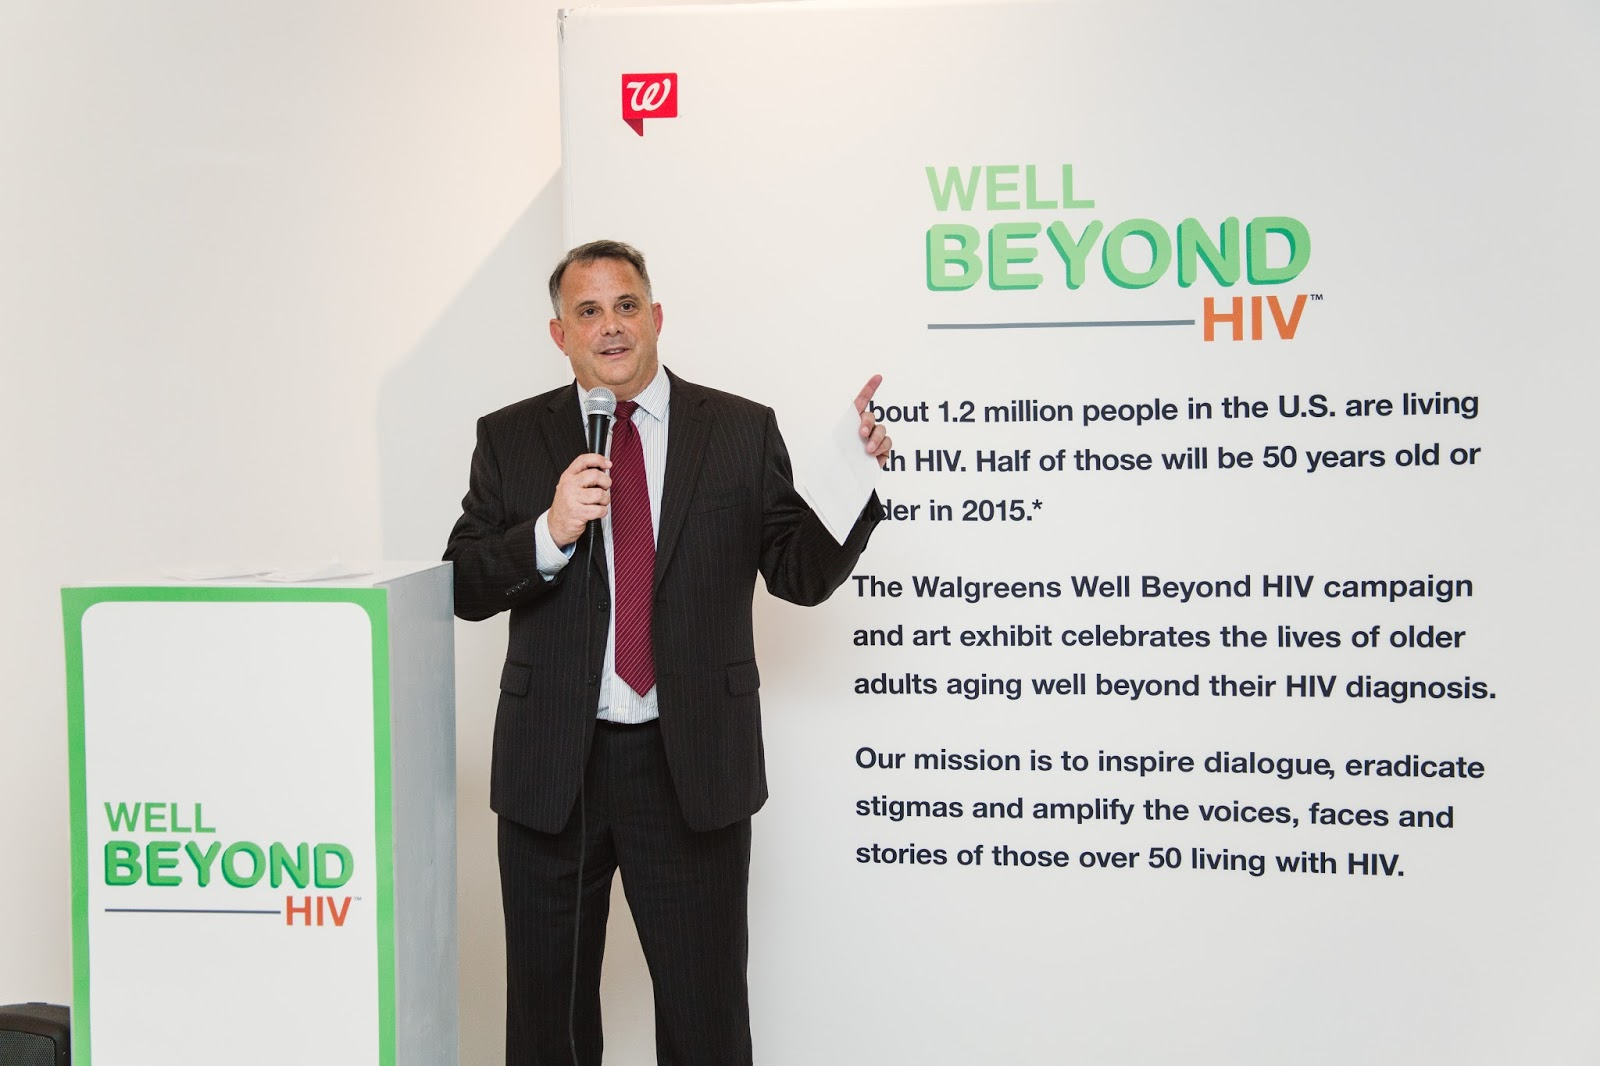 Glen Pietrandoni Walgreens Well Beyond HIV NYC Event